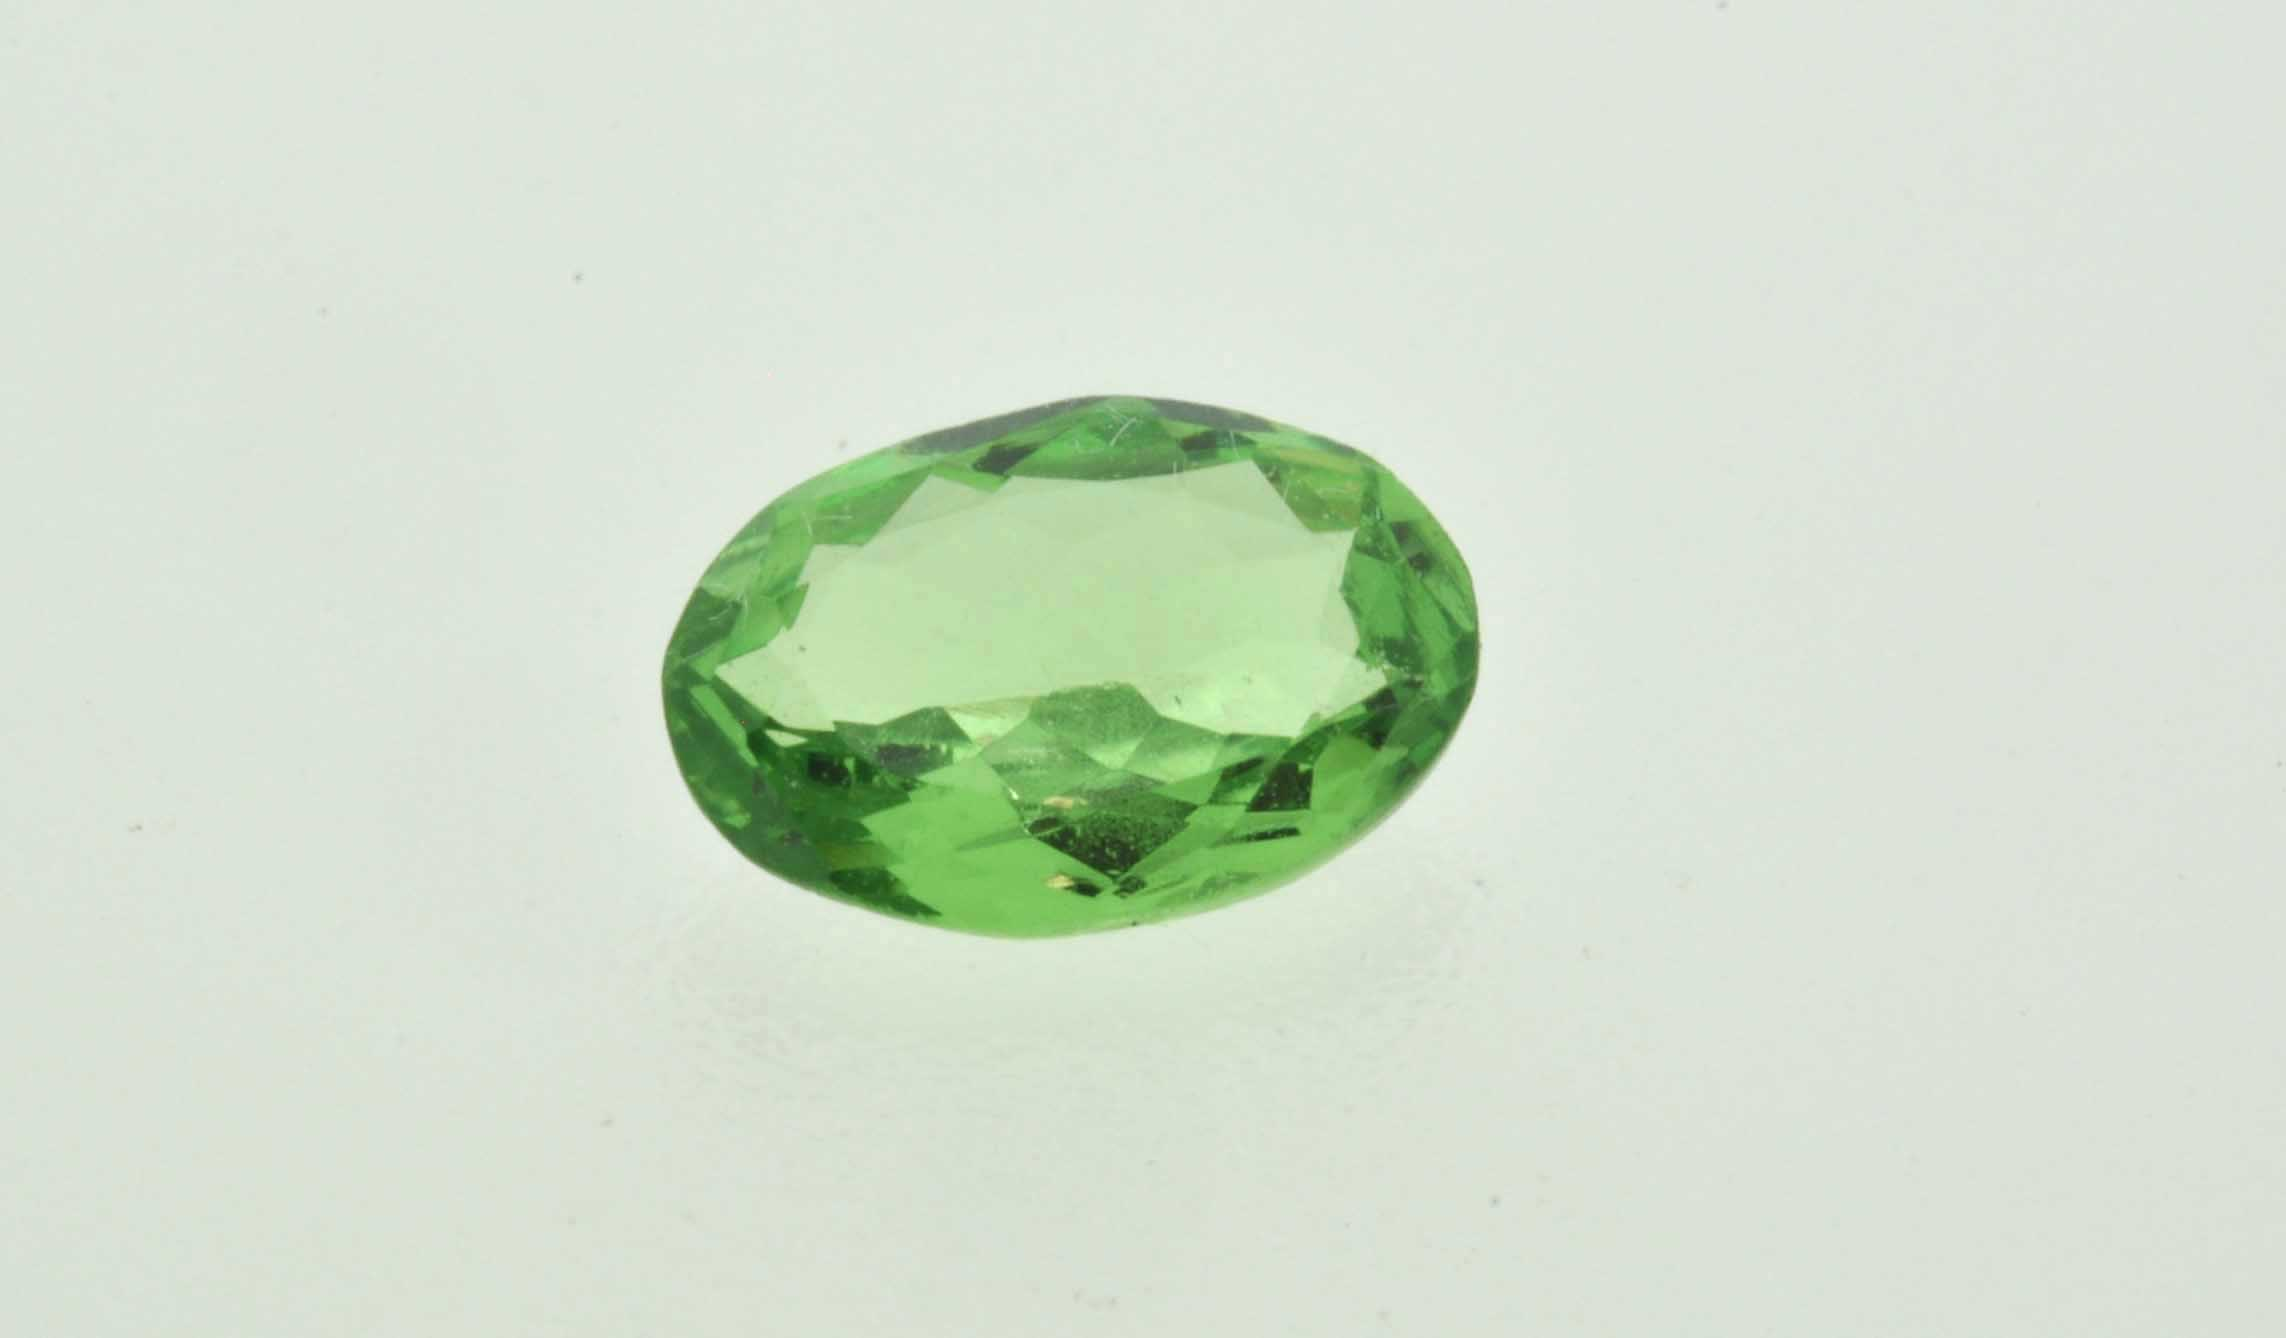 jewelry tsavorite value garnet tanzania price article gemstone and information